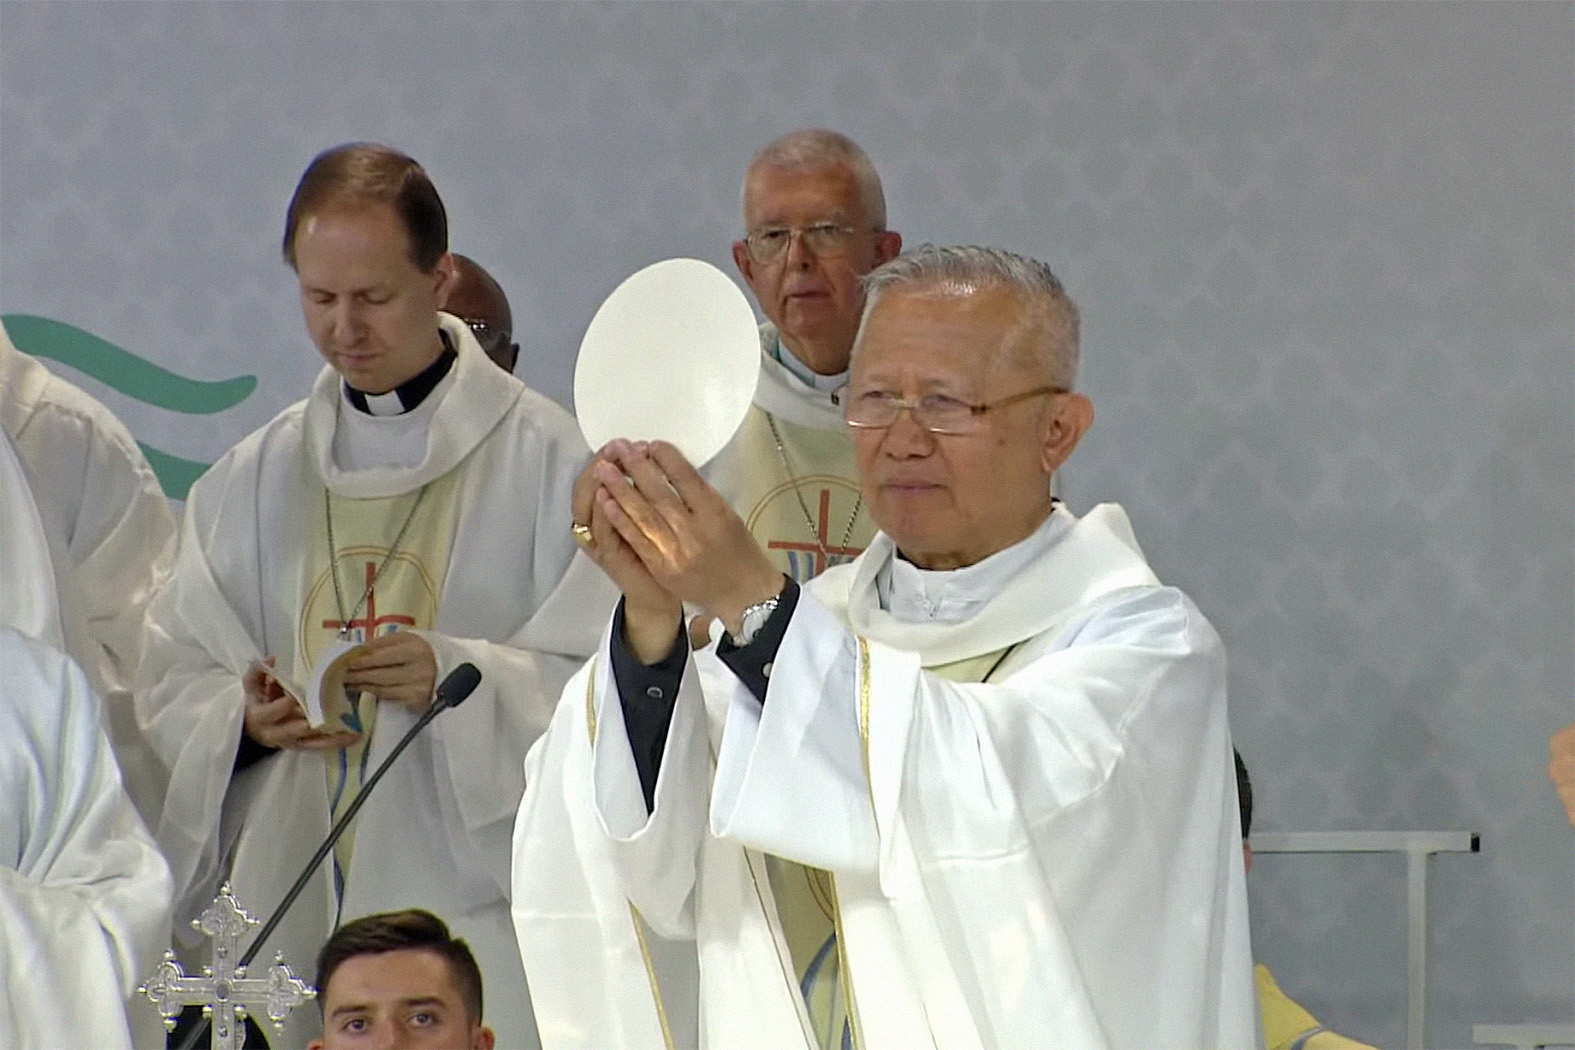 FULL TEXT: Homily of Archbishop Palma during Mass for the 52nd IEC in Budapest